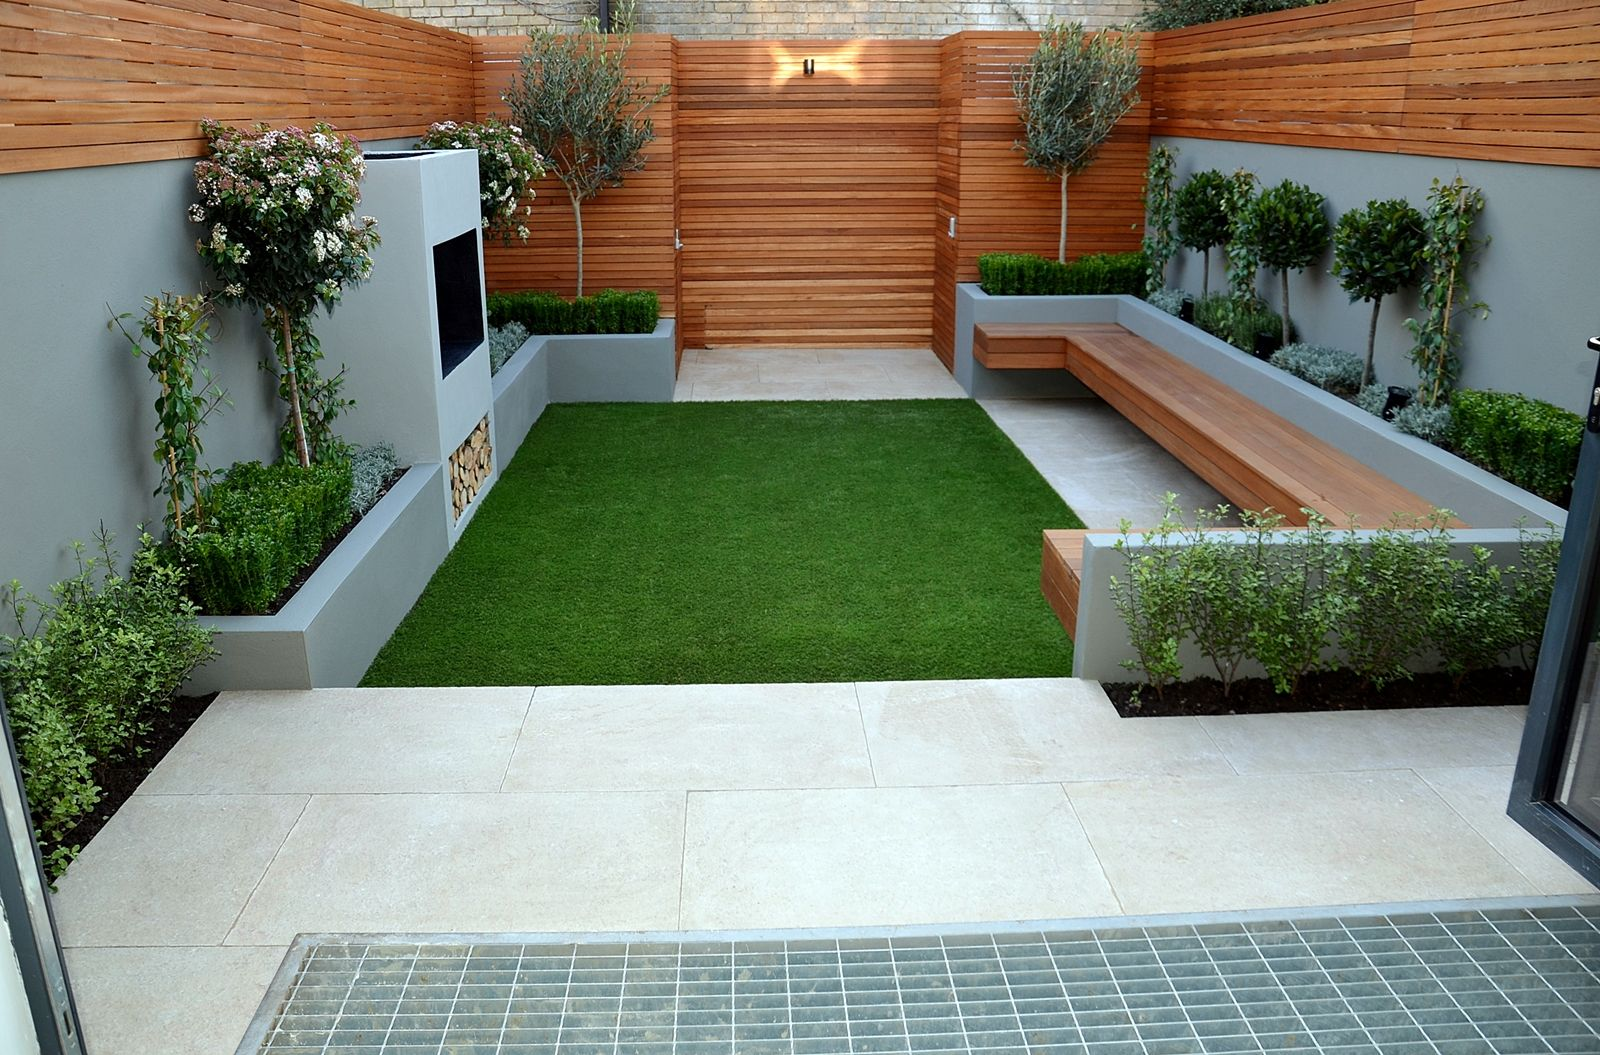 Attractive Urban Garden Design Designer Gardens Landscape Design Ideas Online